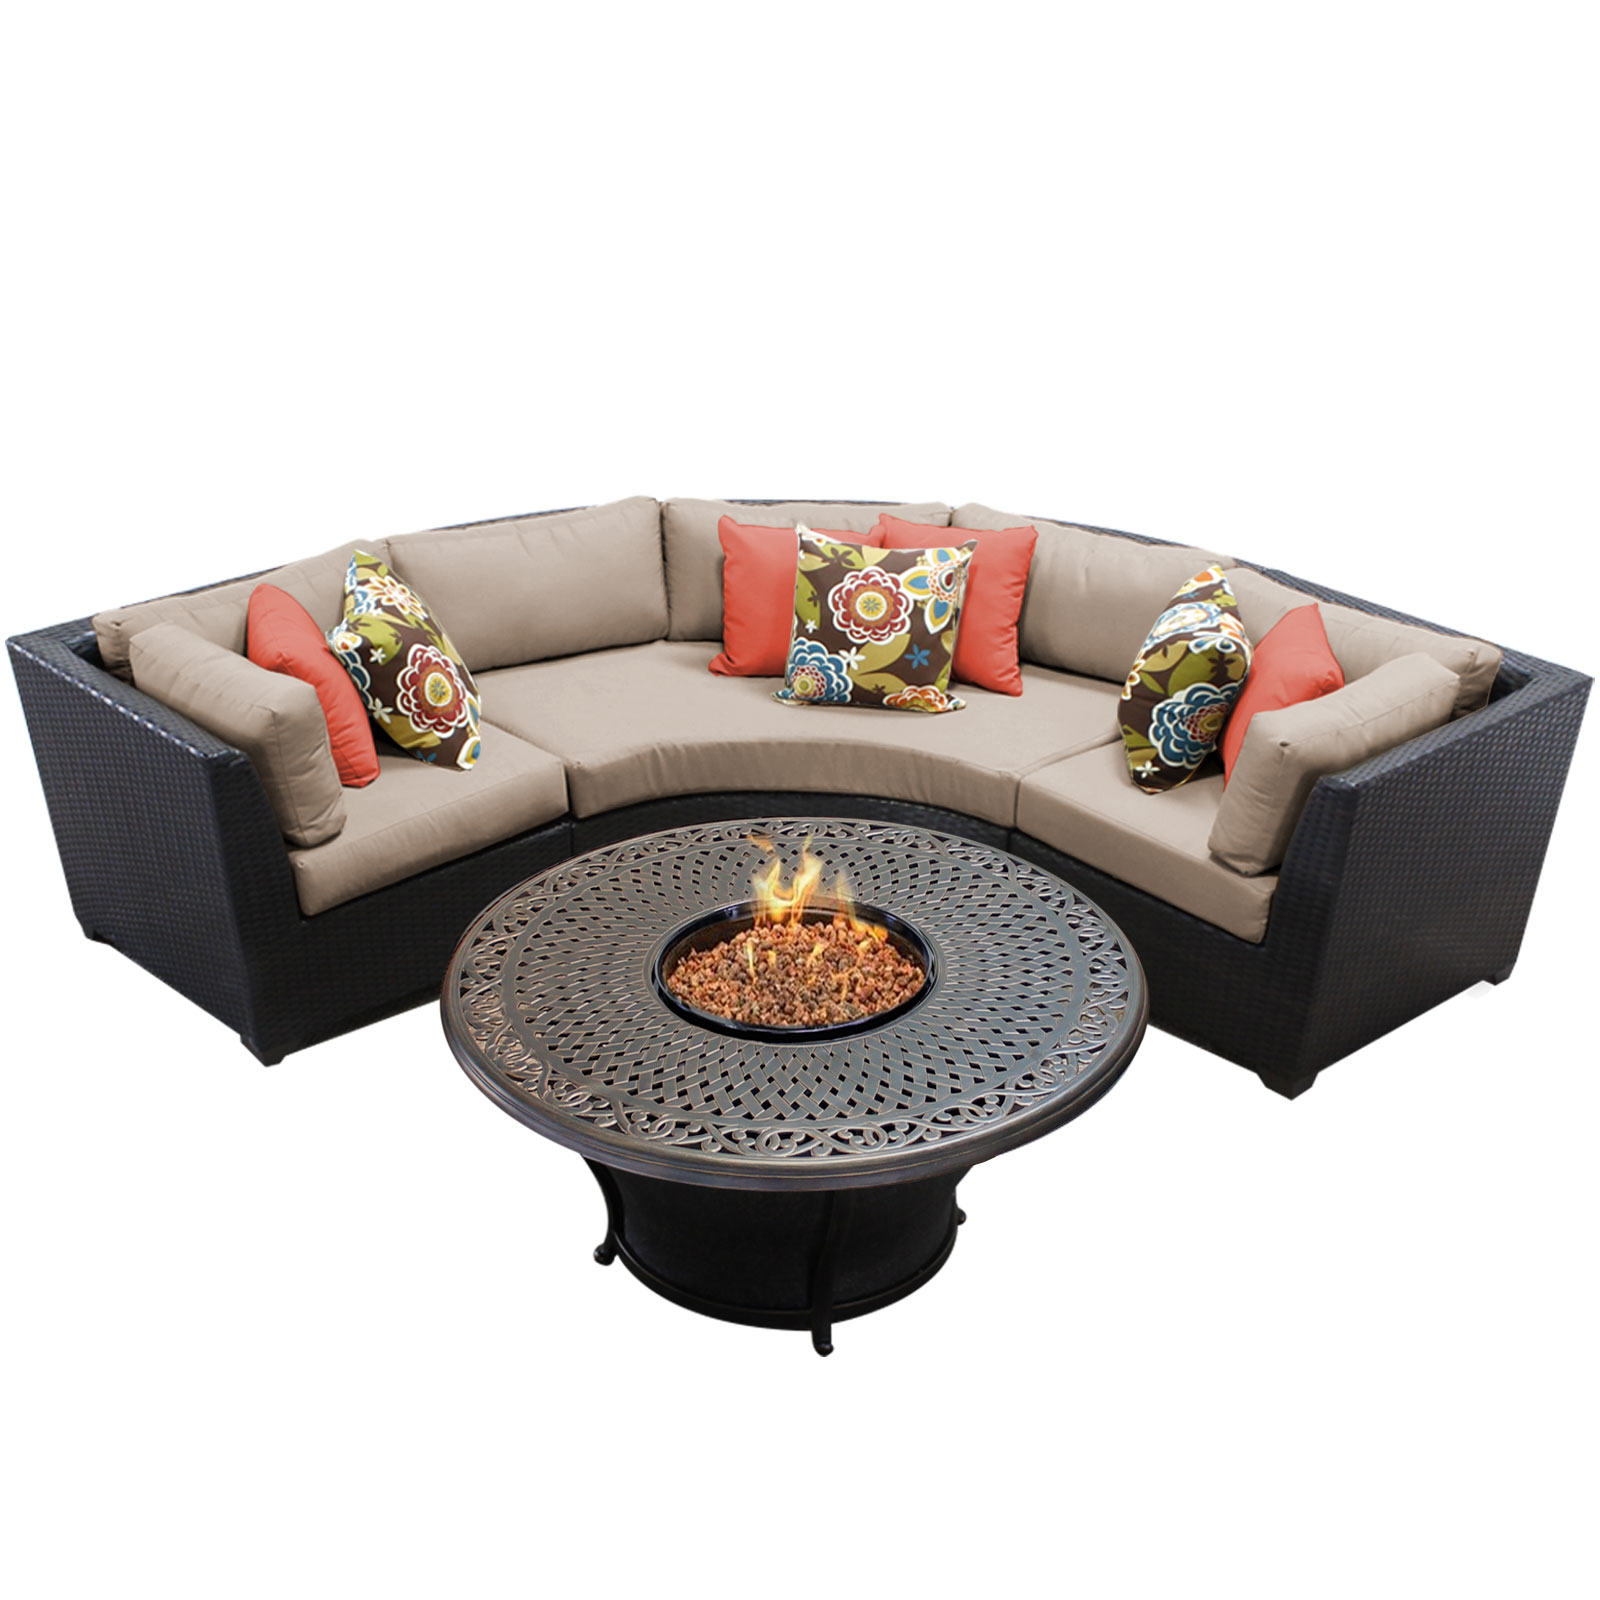 Bermuda 4 Piece Outdoor Wicker Patio Furniture Set 04f